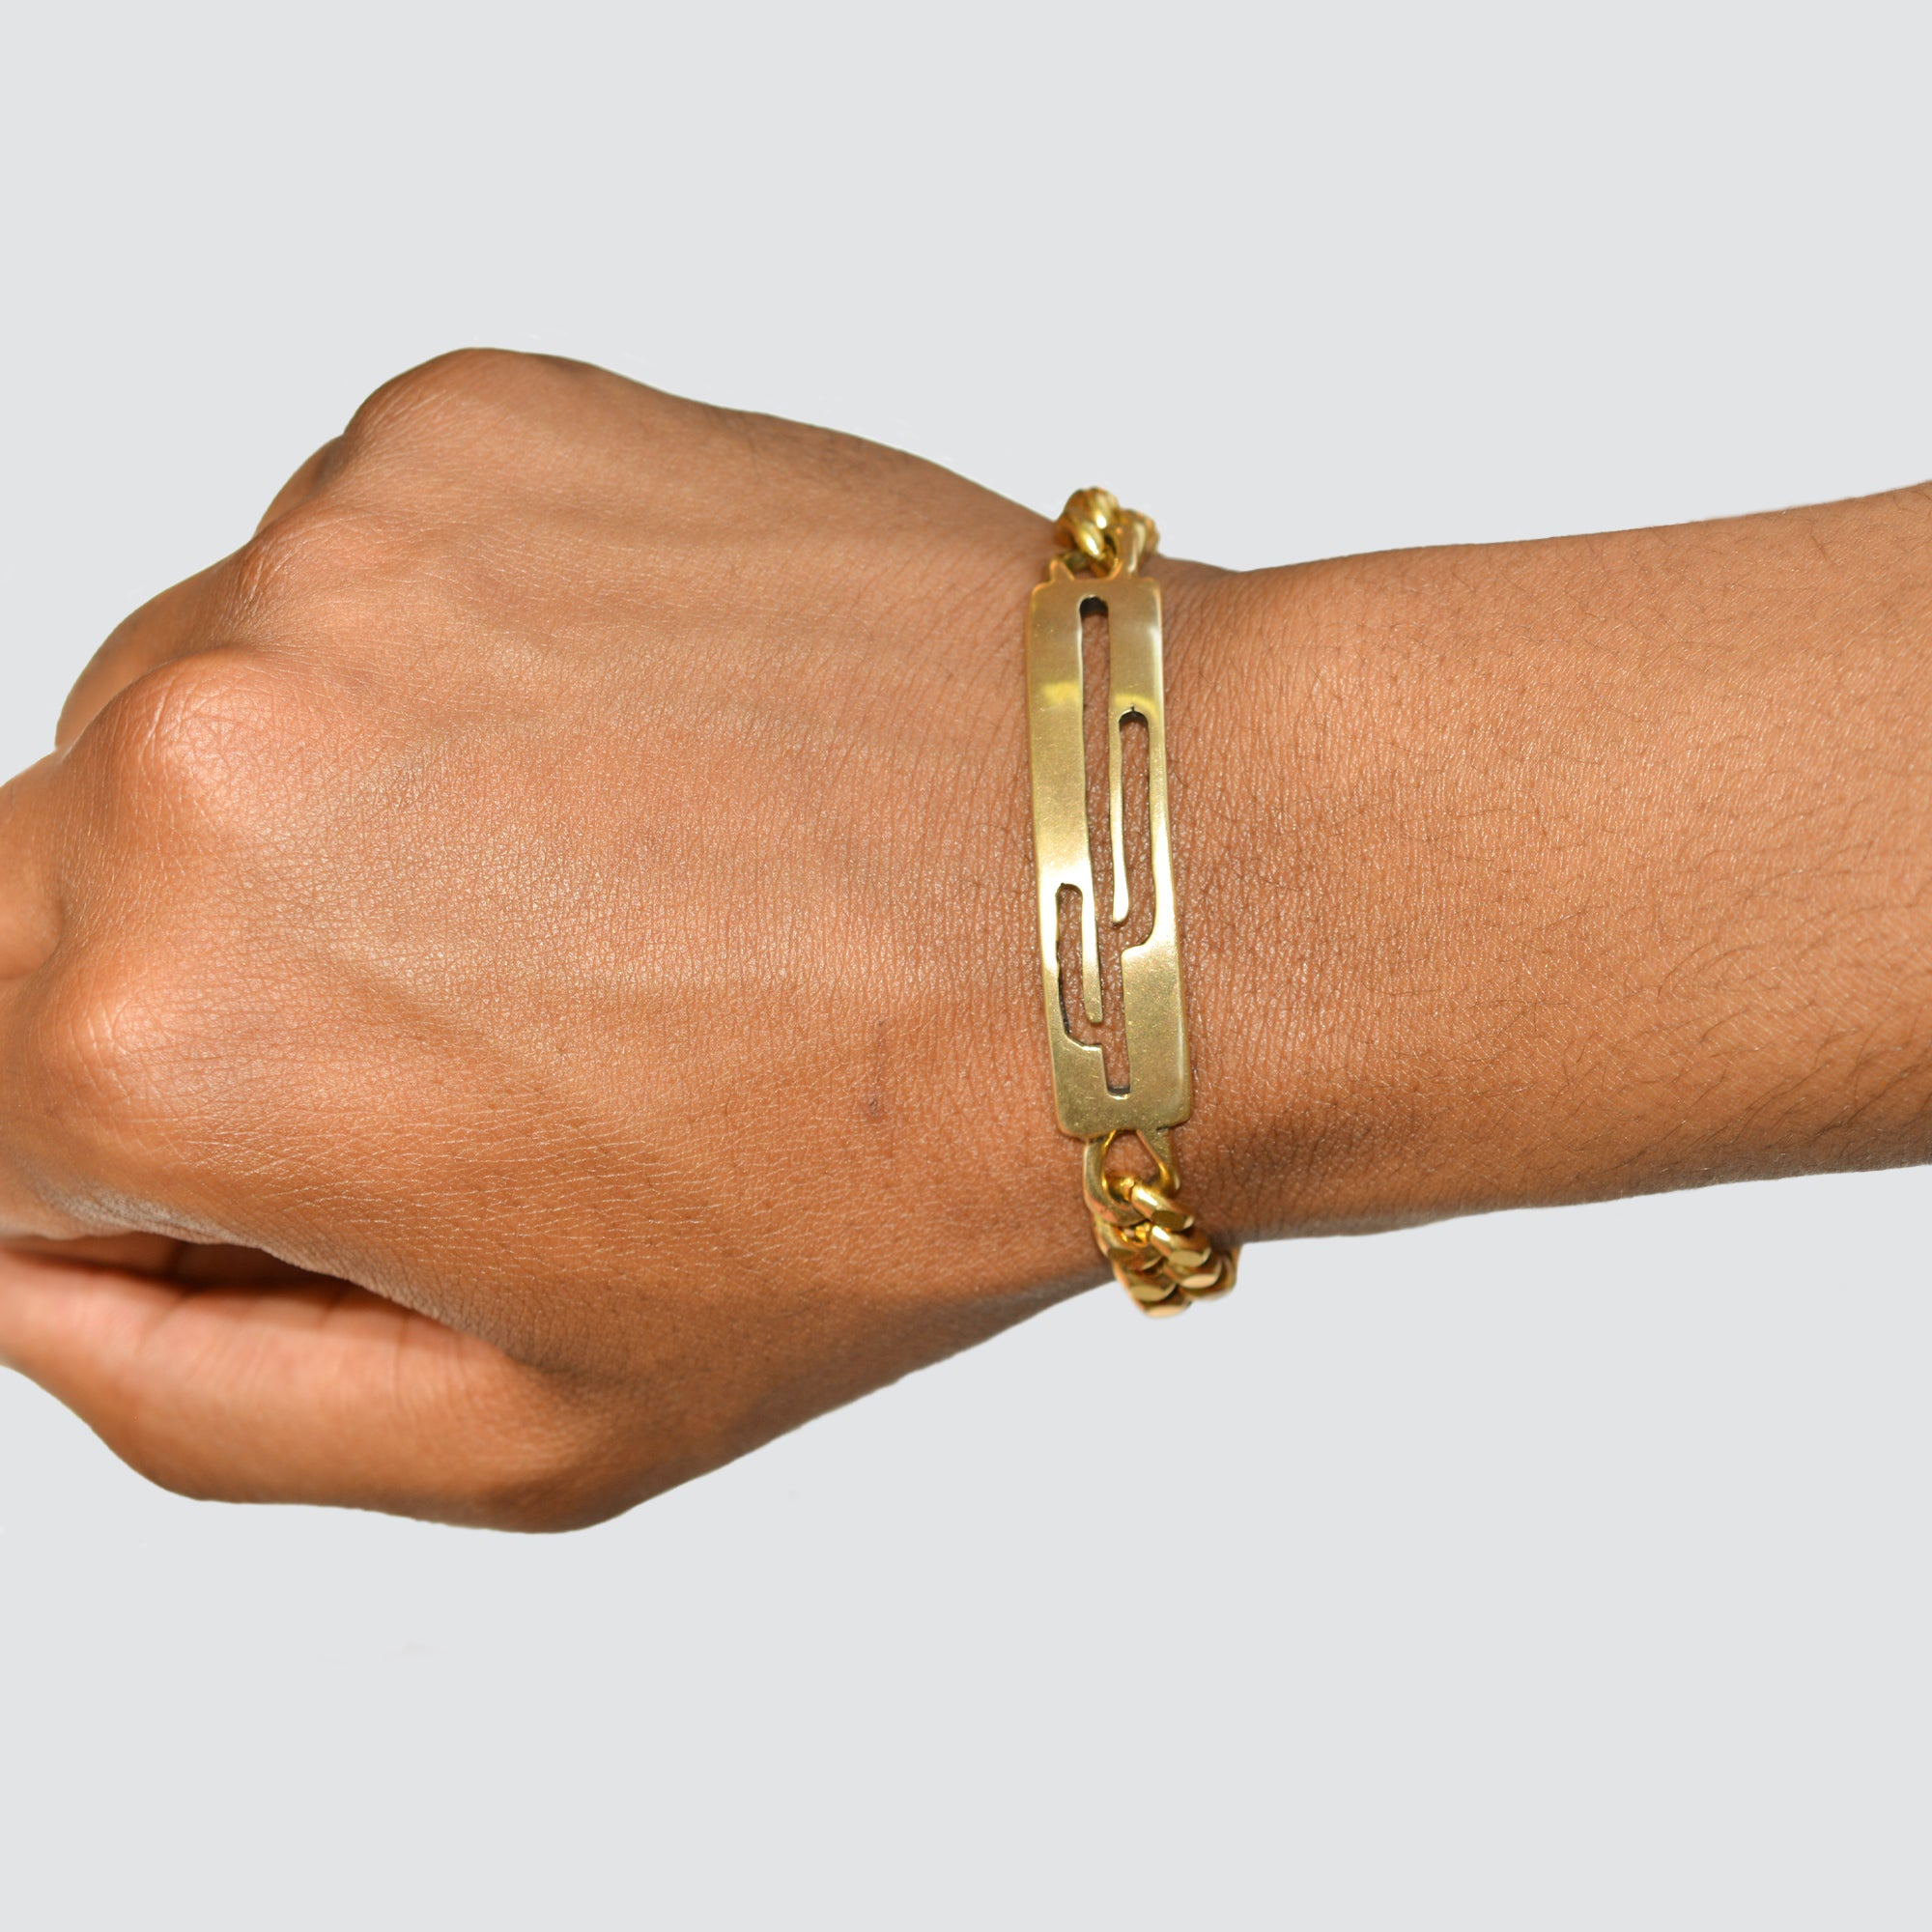 DESERT ID // BRACELET // HEAVY WEIGHT